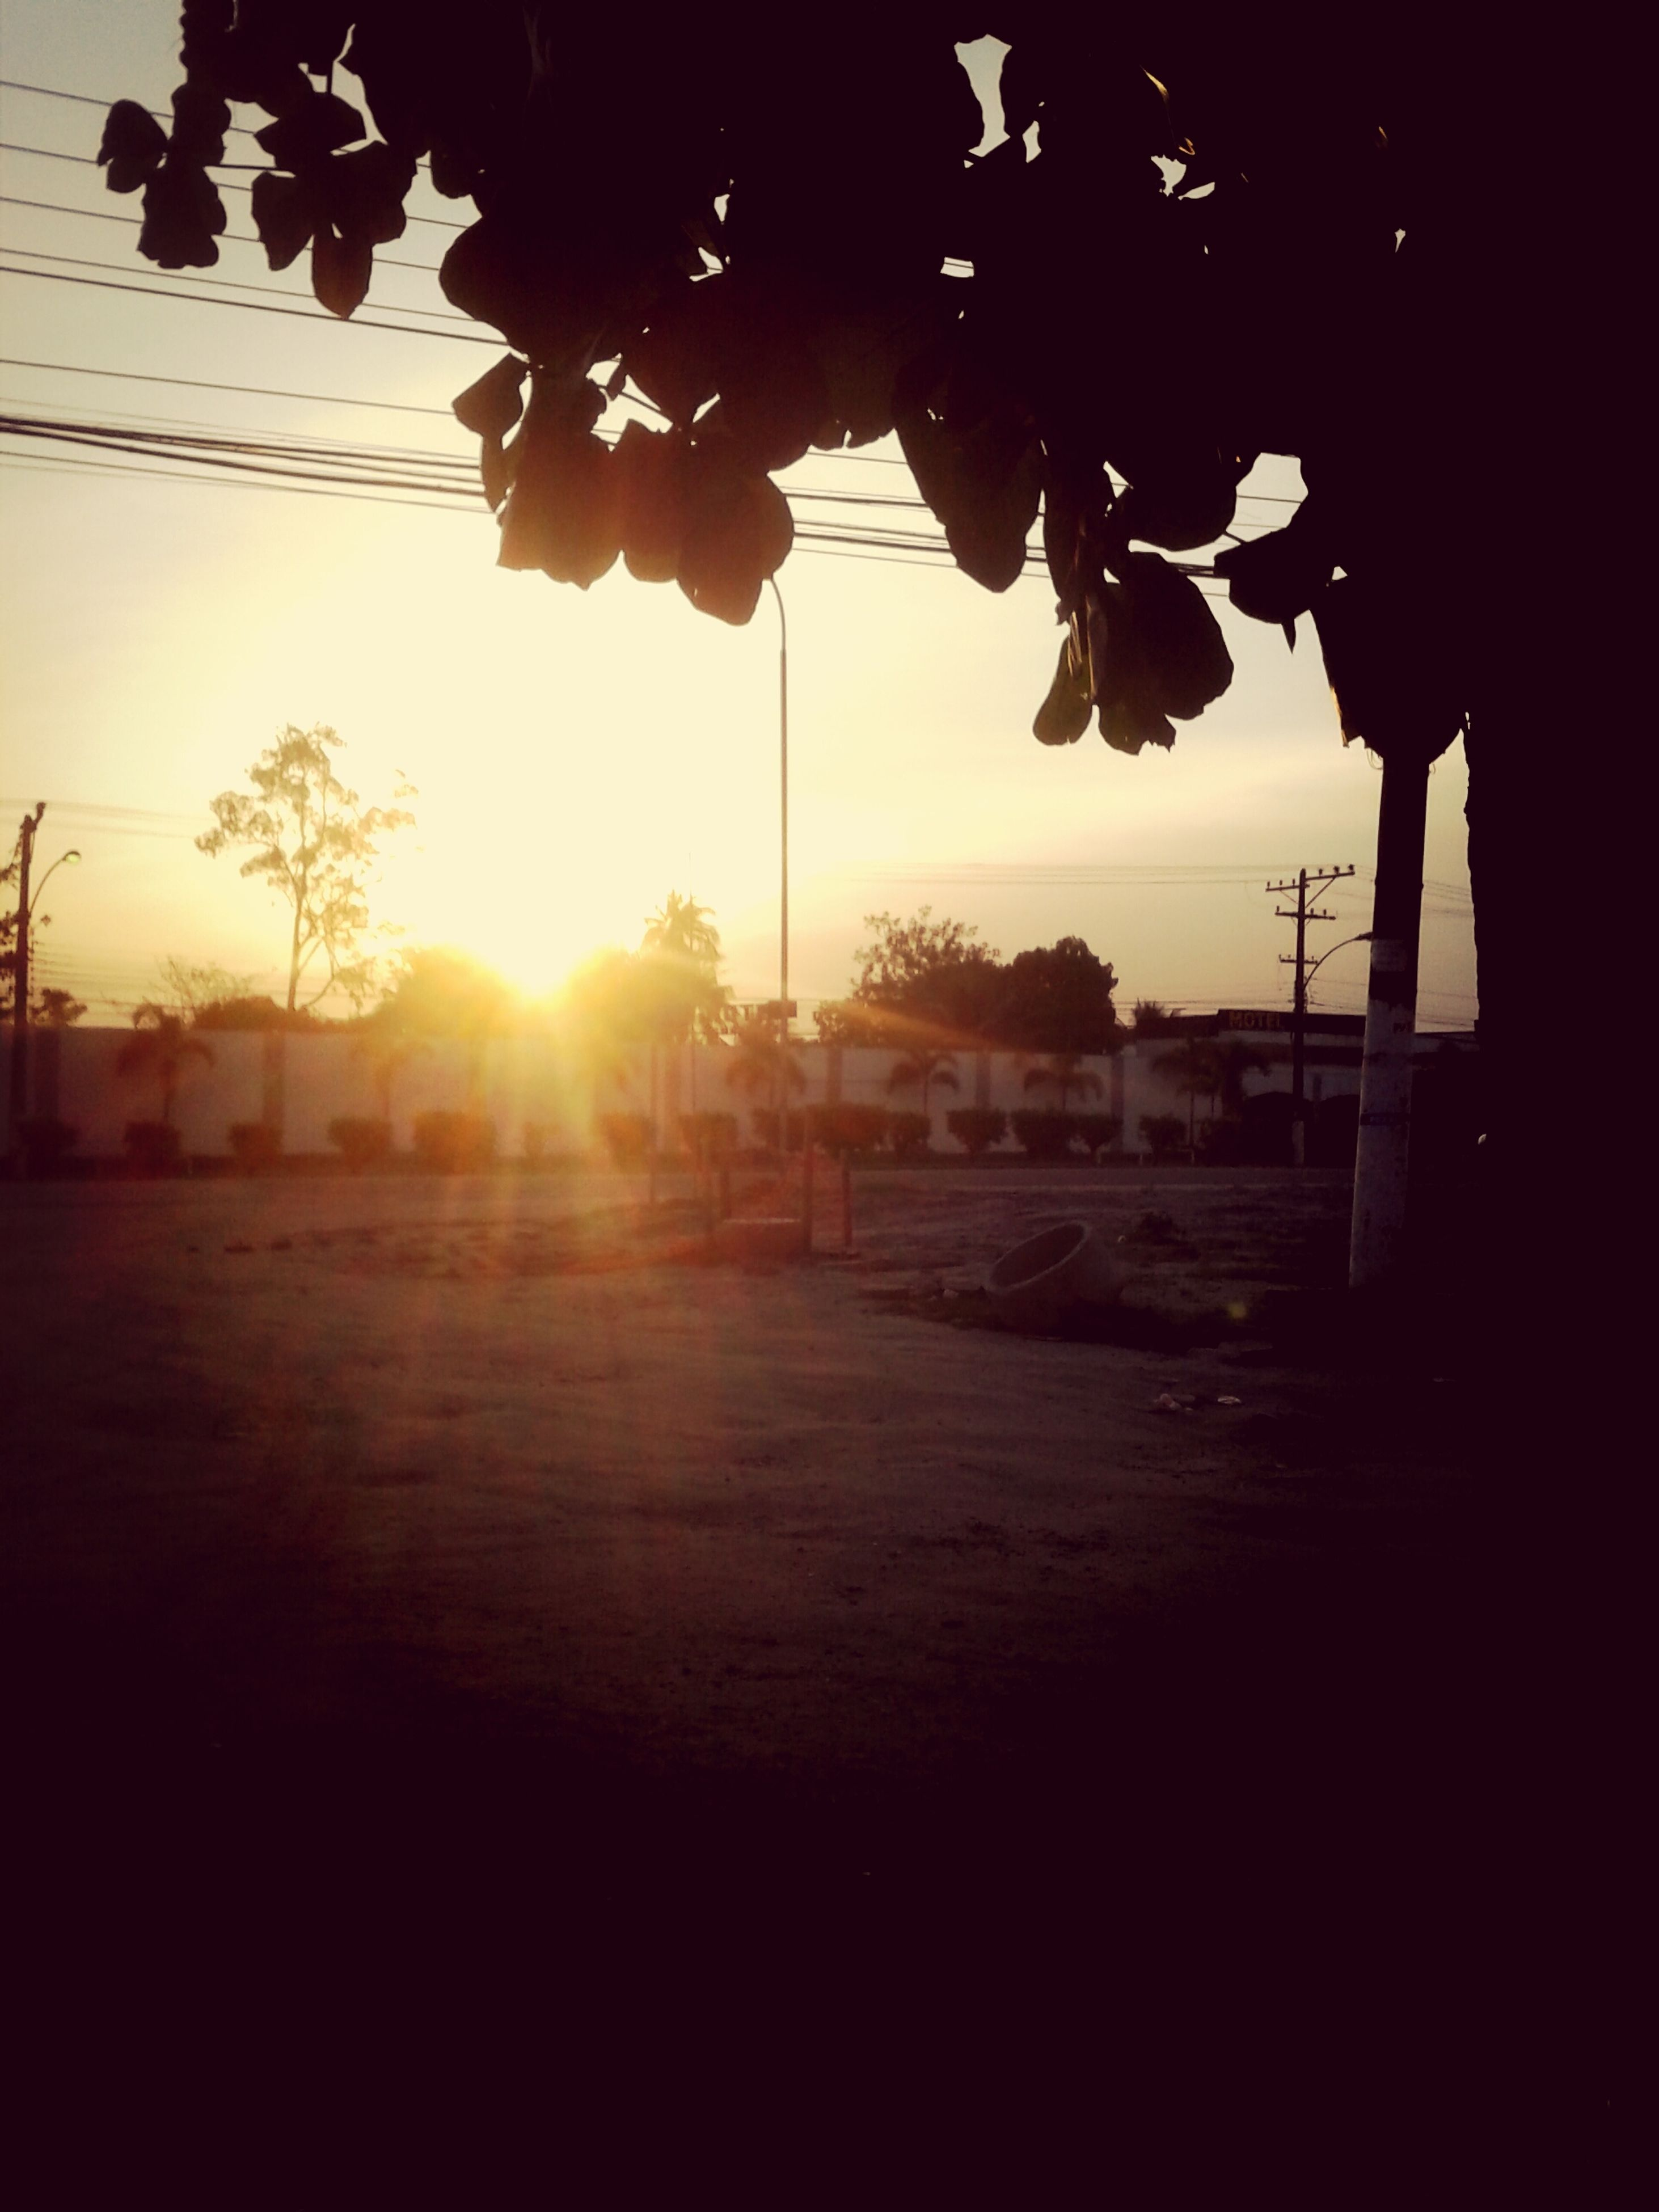 sun, sunset, silhouette, sunlight, sunbeam, lens flare, tree, sky, built structure, architecture, building exterior, nature, shadow, tranquility, outdoors, back lit, no people, street light, orange color, street